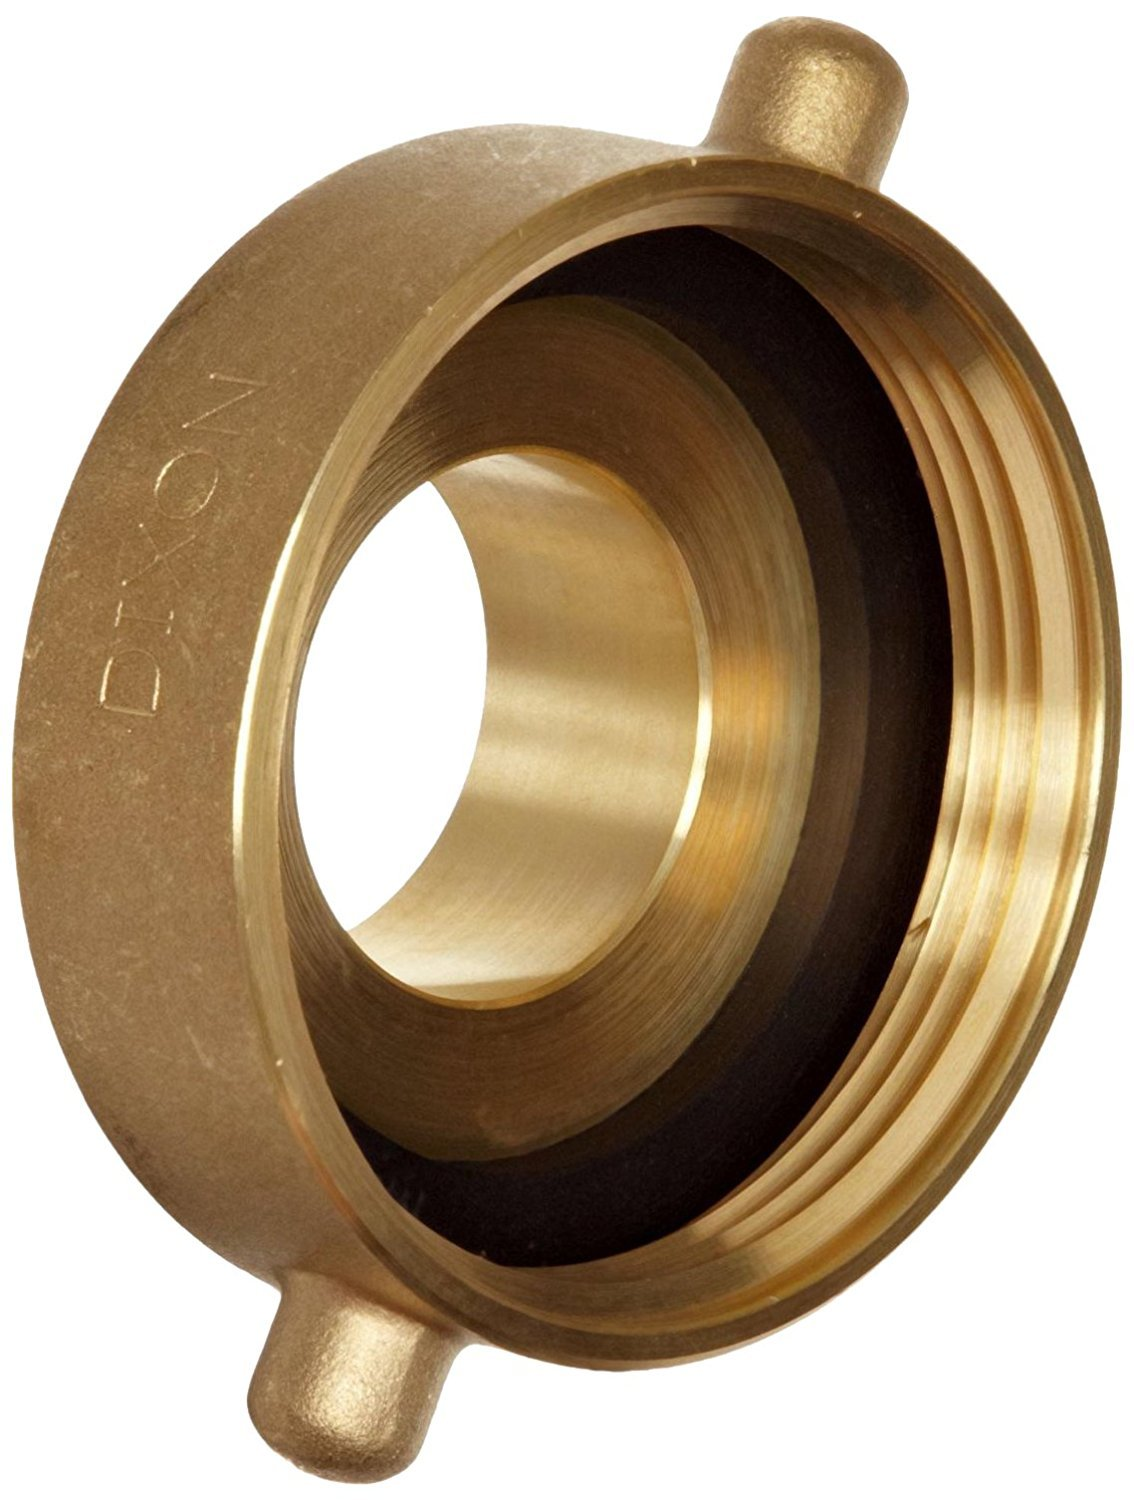 Campbell Fittings HA3025F Hydrant Adapter, 3'' ID, Brass, 3'' NST x 2-1/2'' NST